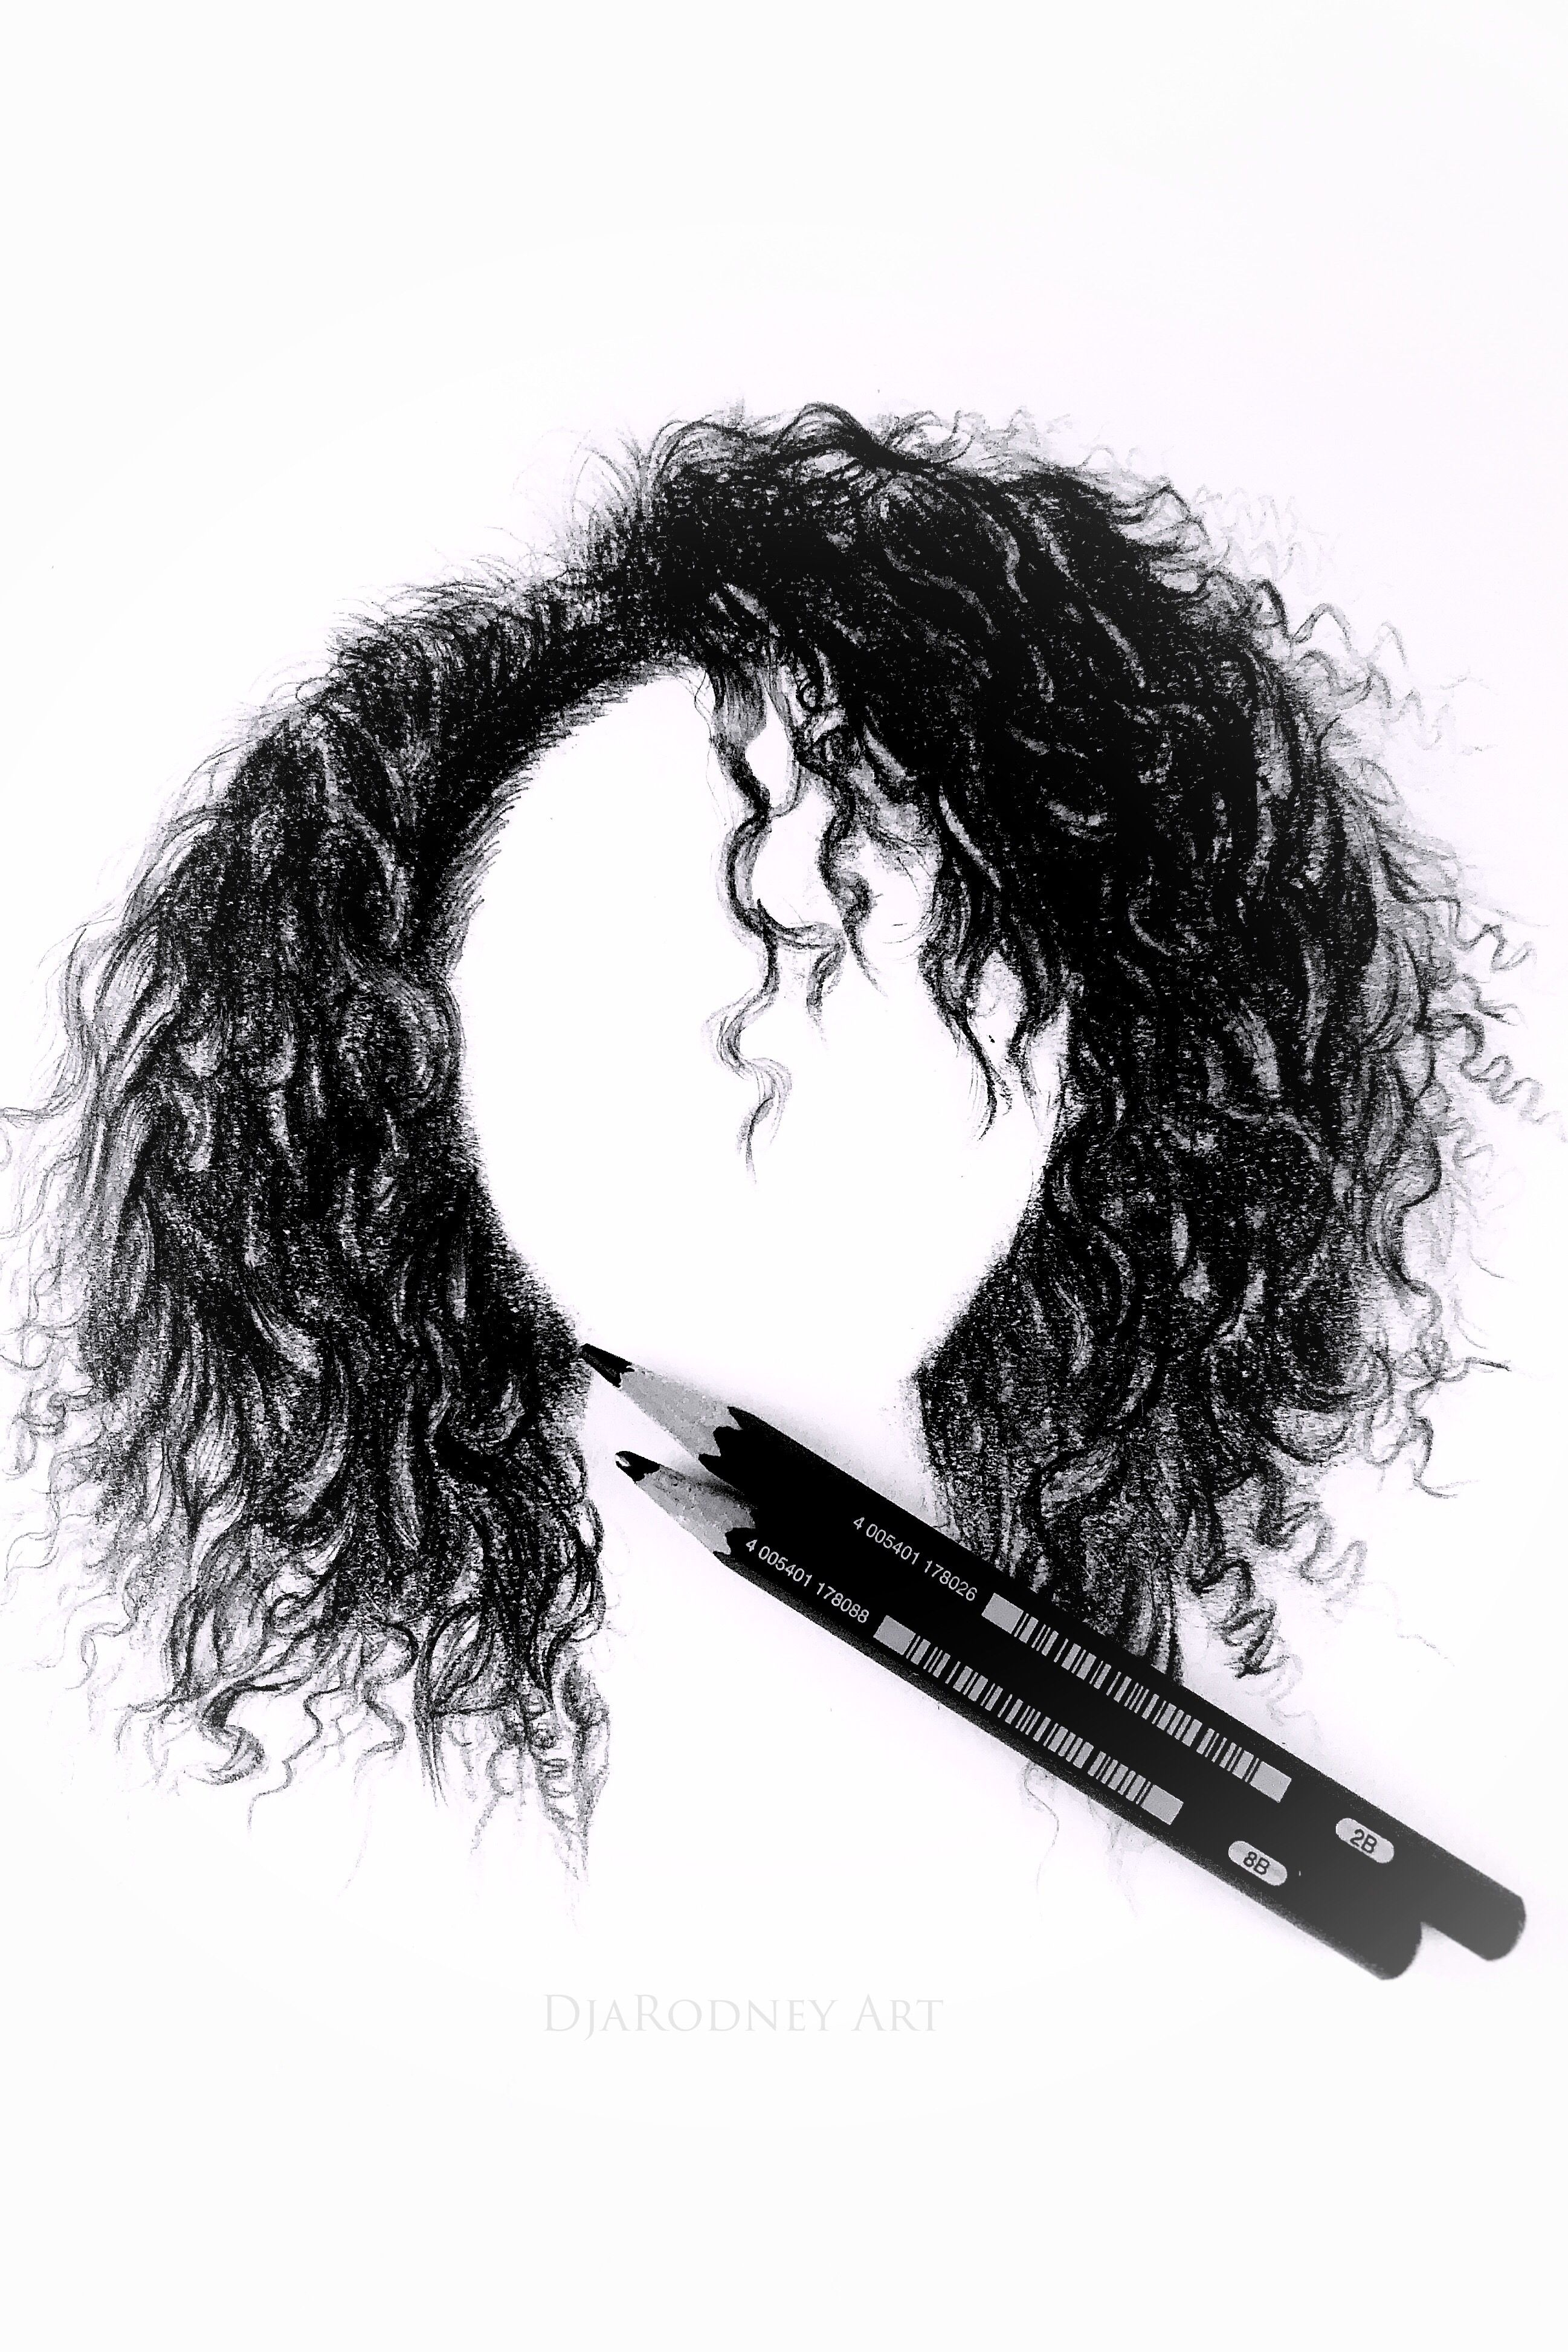 How To Draw Curly Hair Narrated How To Draw Hair Drawing Hair Tutorial Step By Step Sketches